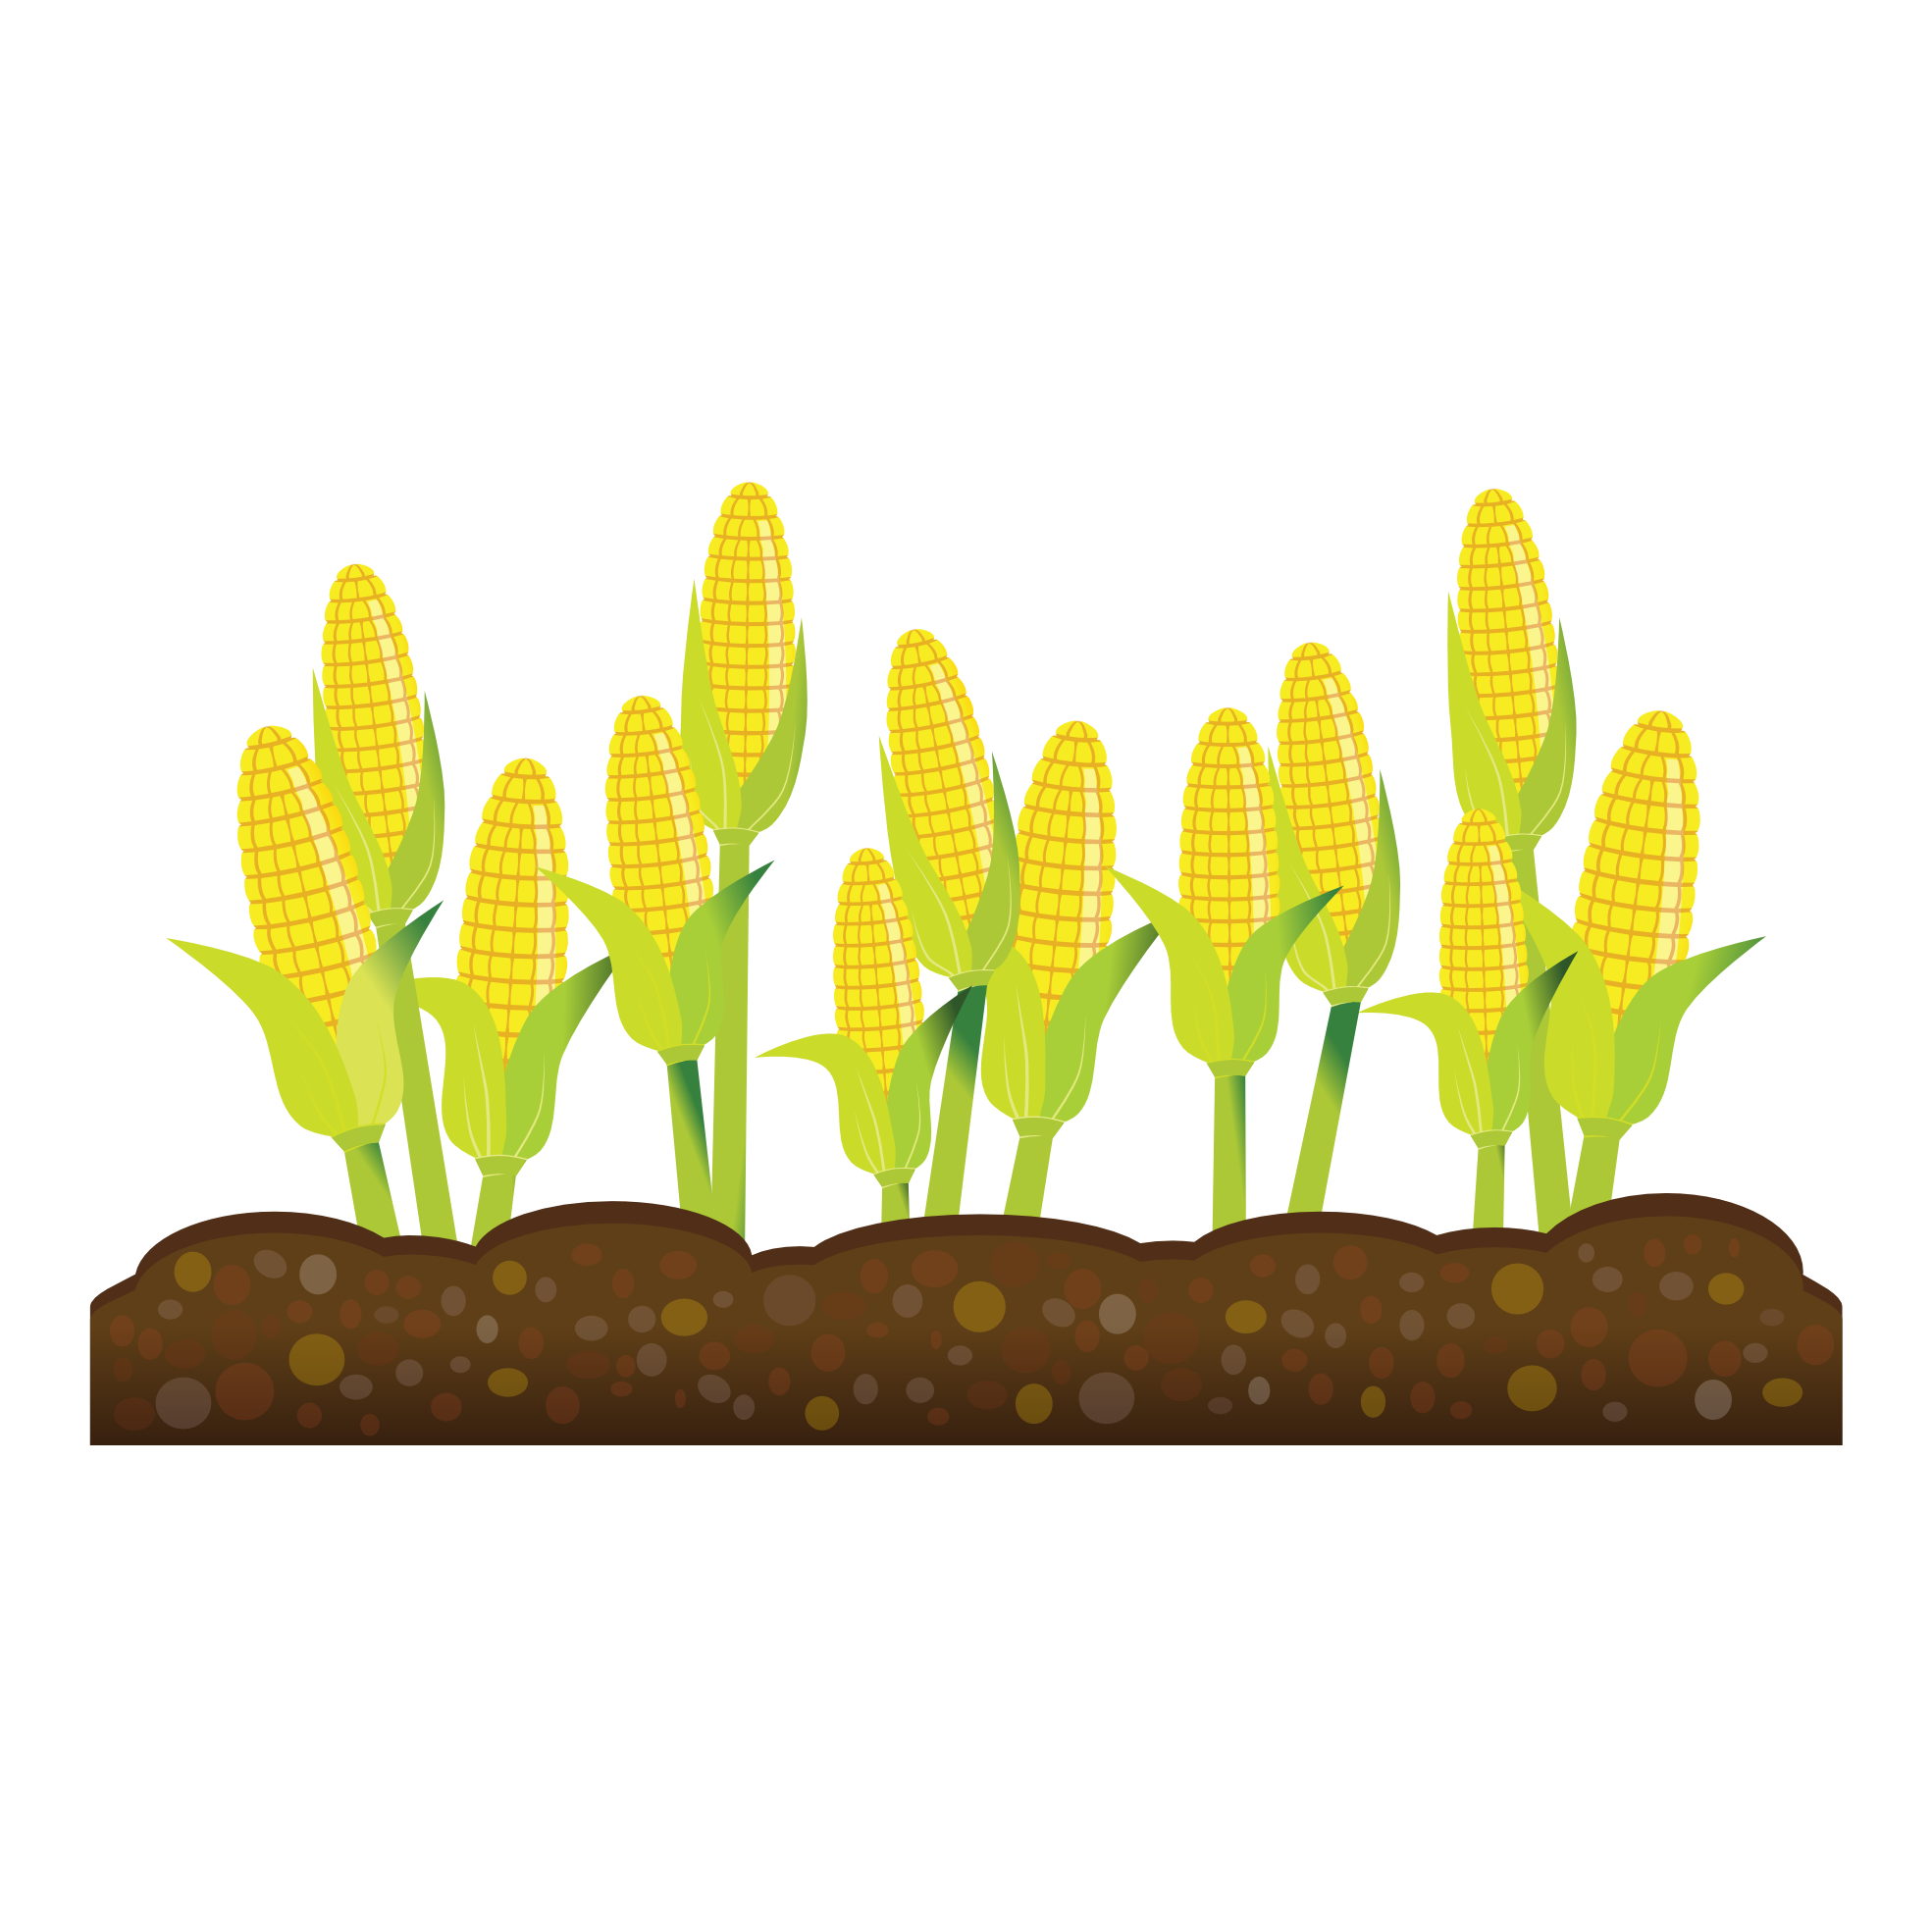 Stalk image free. Cornfield drawing wheat field svg freeuse stock